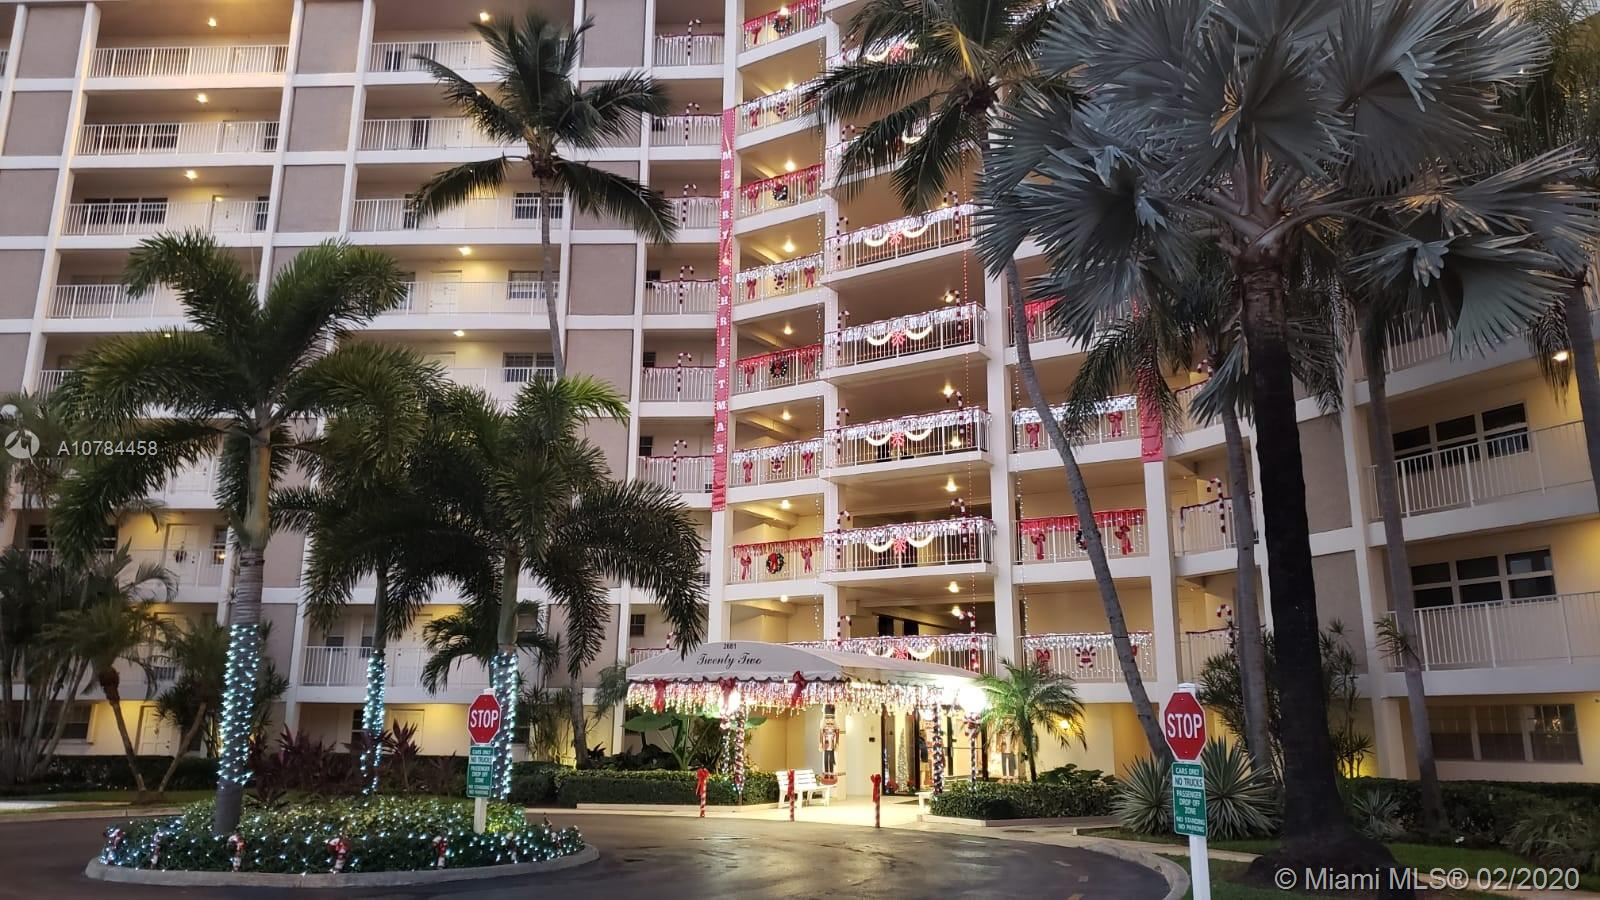 Beatiful apartment in Pompano Beach! This is the only KING size model in the area, the largest 3/2 model in Palmaire with over 2100 sqft according to the original purchase contract. The assigned parking spot is steps away from the apartment! Ready to move, nicely remodeled. Gorgoeus Marble and wood floors. Granite counter top in kitchen. Impact Windows. Must see! Maintenance includes, water, trash, basic cable and internet! 20% MINIMUM DOWN PAYMENT REQUIRED BY ASSOCIATION.